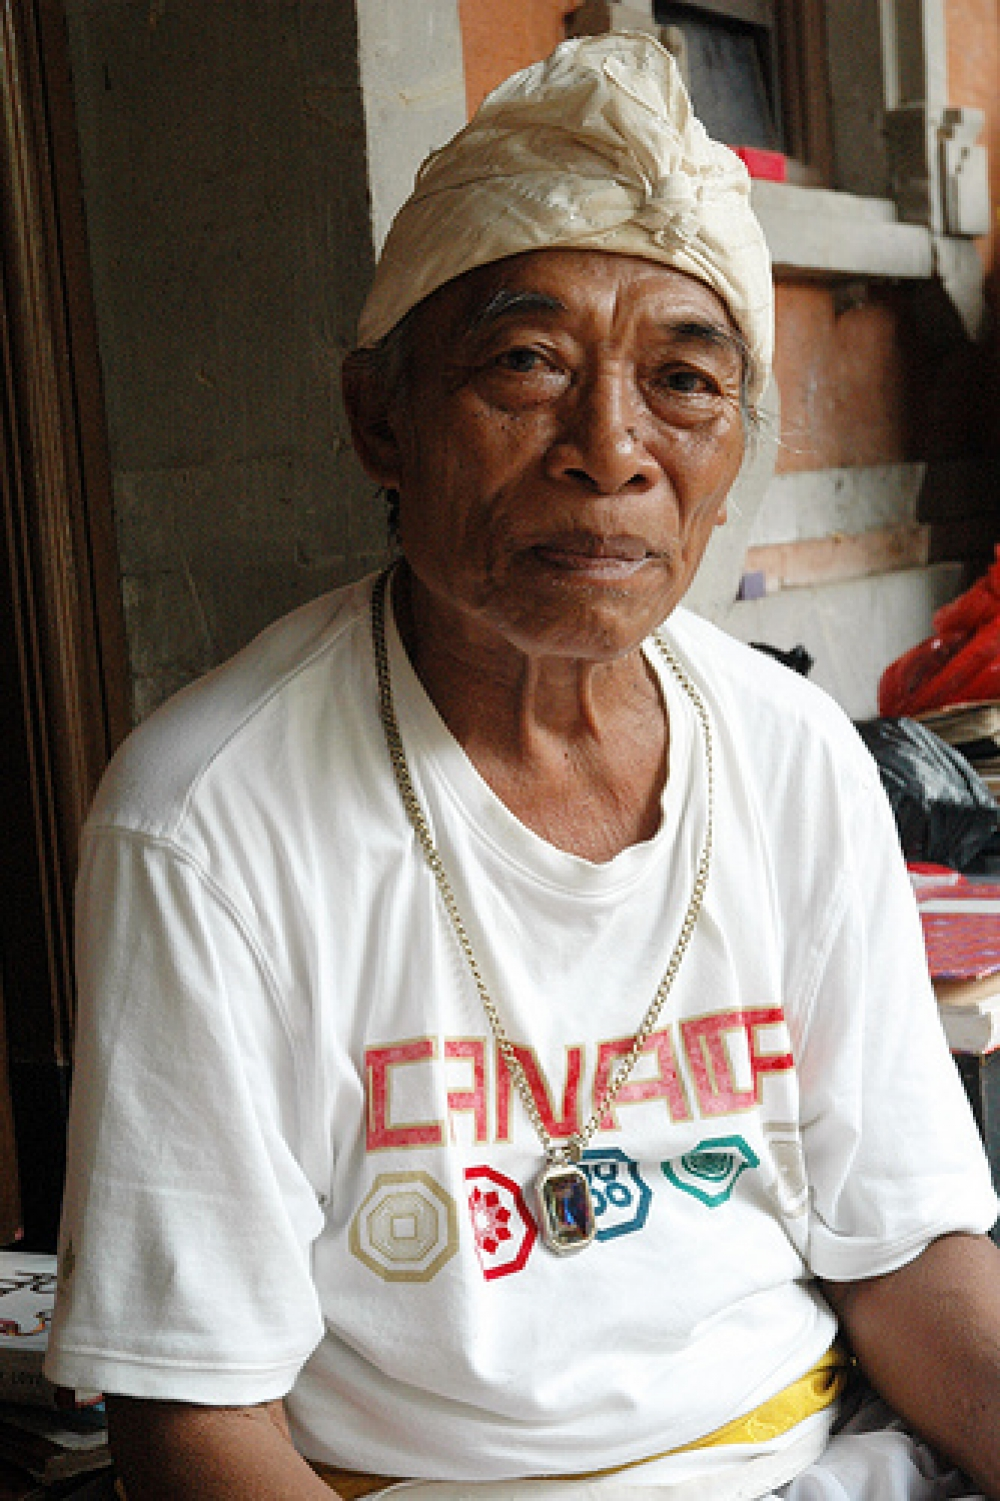 Bali: Not Island Of Old Men